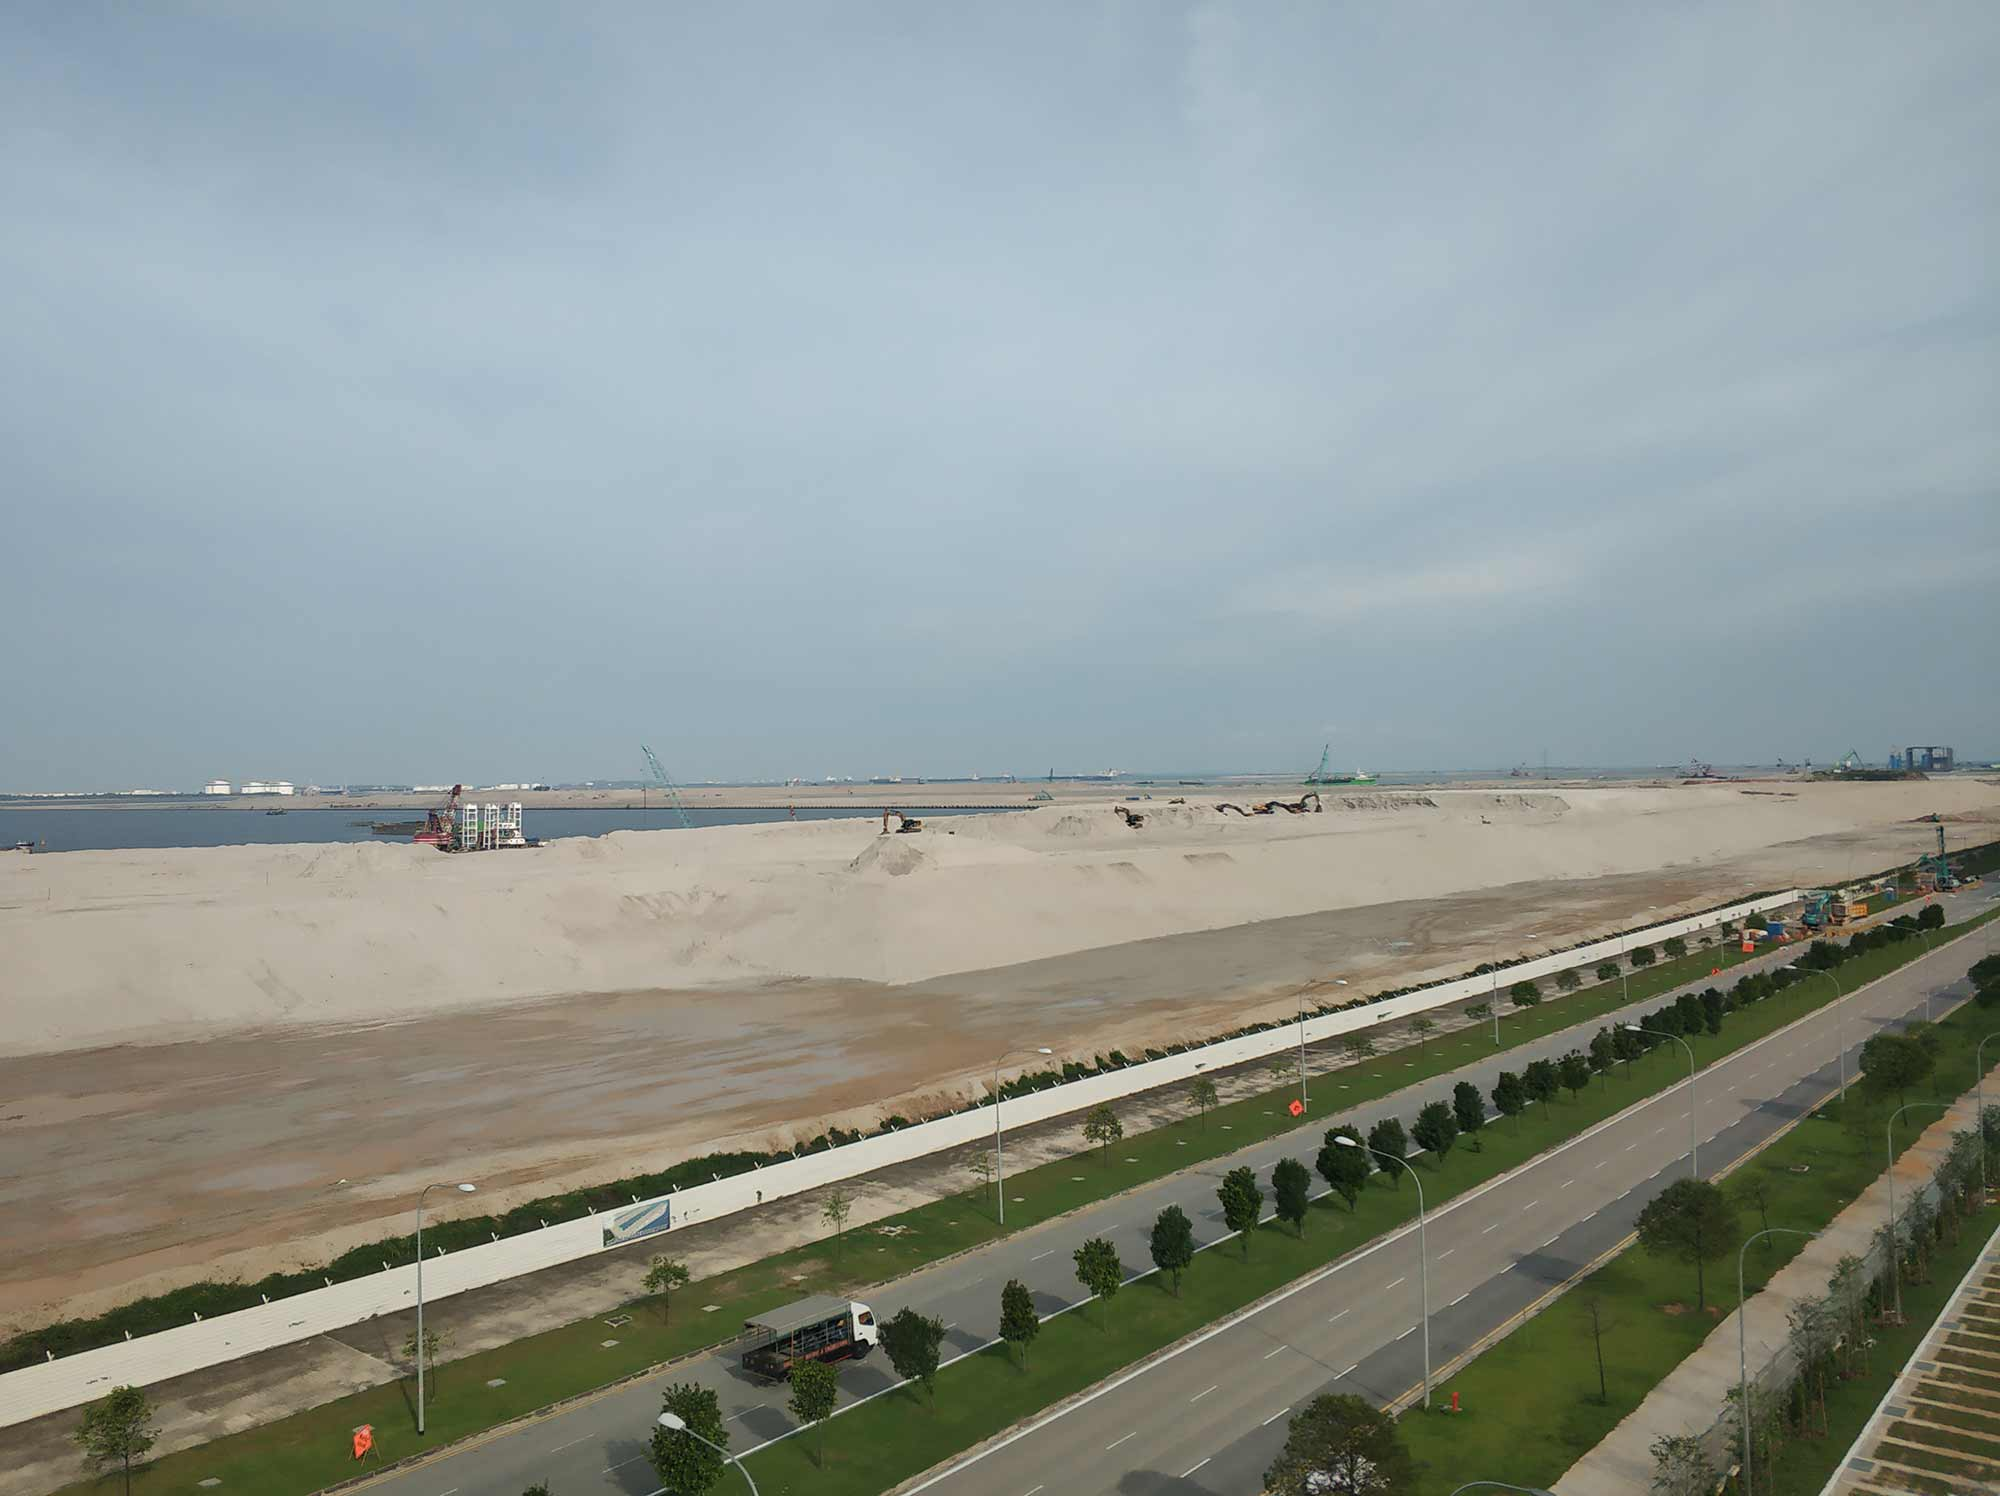 Tuas Port reclamation stockpile, 2019. Photograph: William Jamieson.